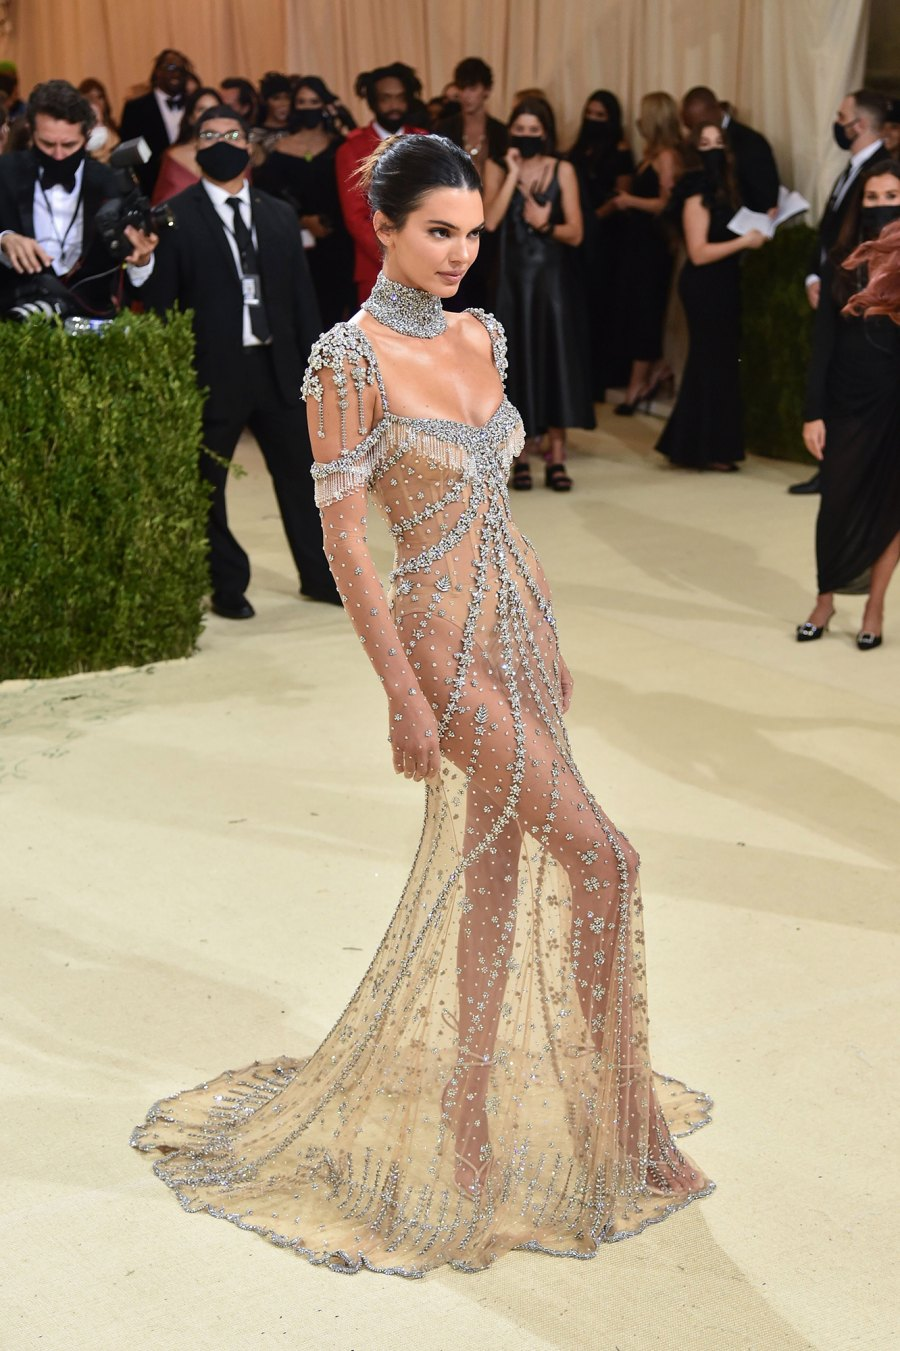 Sexy Sparkles! Kenall Jenner's Met Gala Gown Is a Very Glitzy Nod to Audrey Hepburn